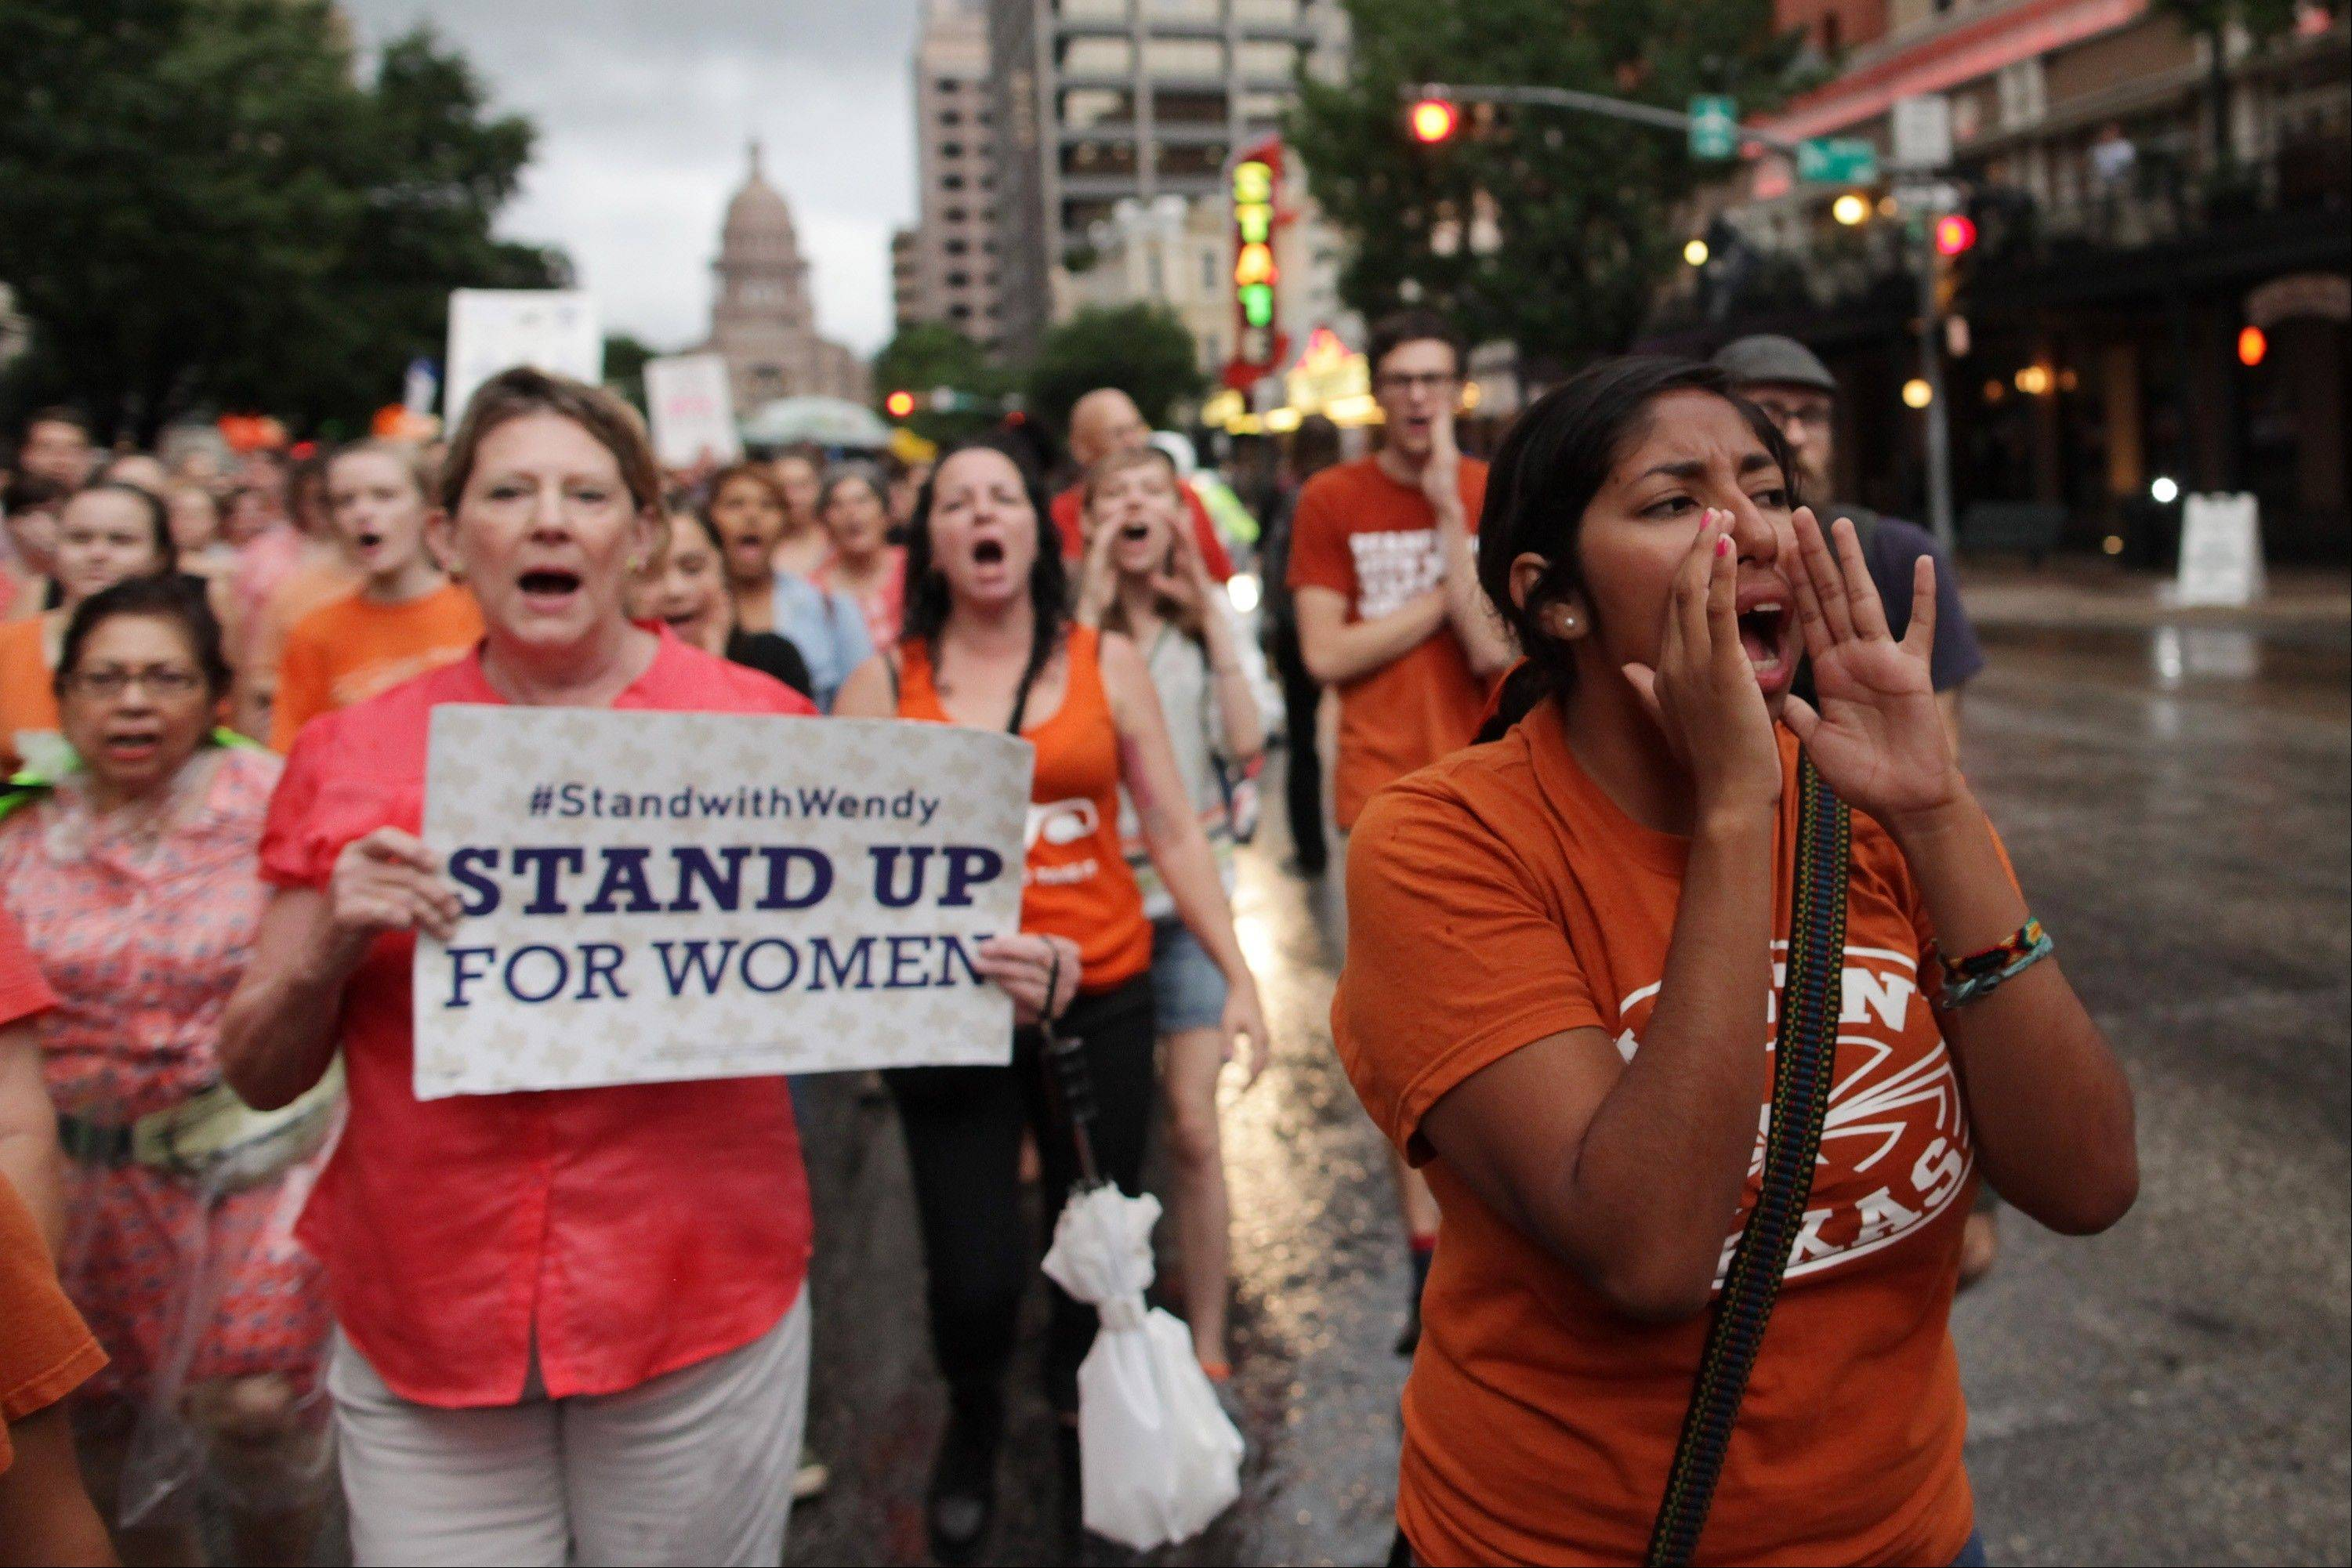 Abortion rights advocates march down Congress Ave. to protest recent legislation that could shut down all but five abortion clinics and restrict abortion rights throughout the state in Austin, Texas on Monday, July 15, 2013.